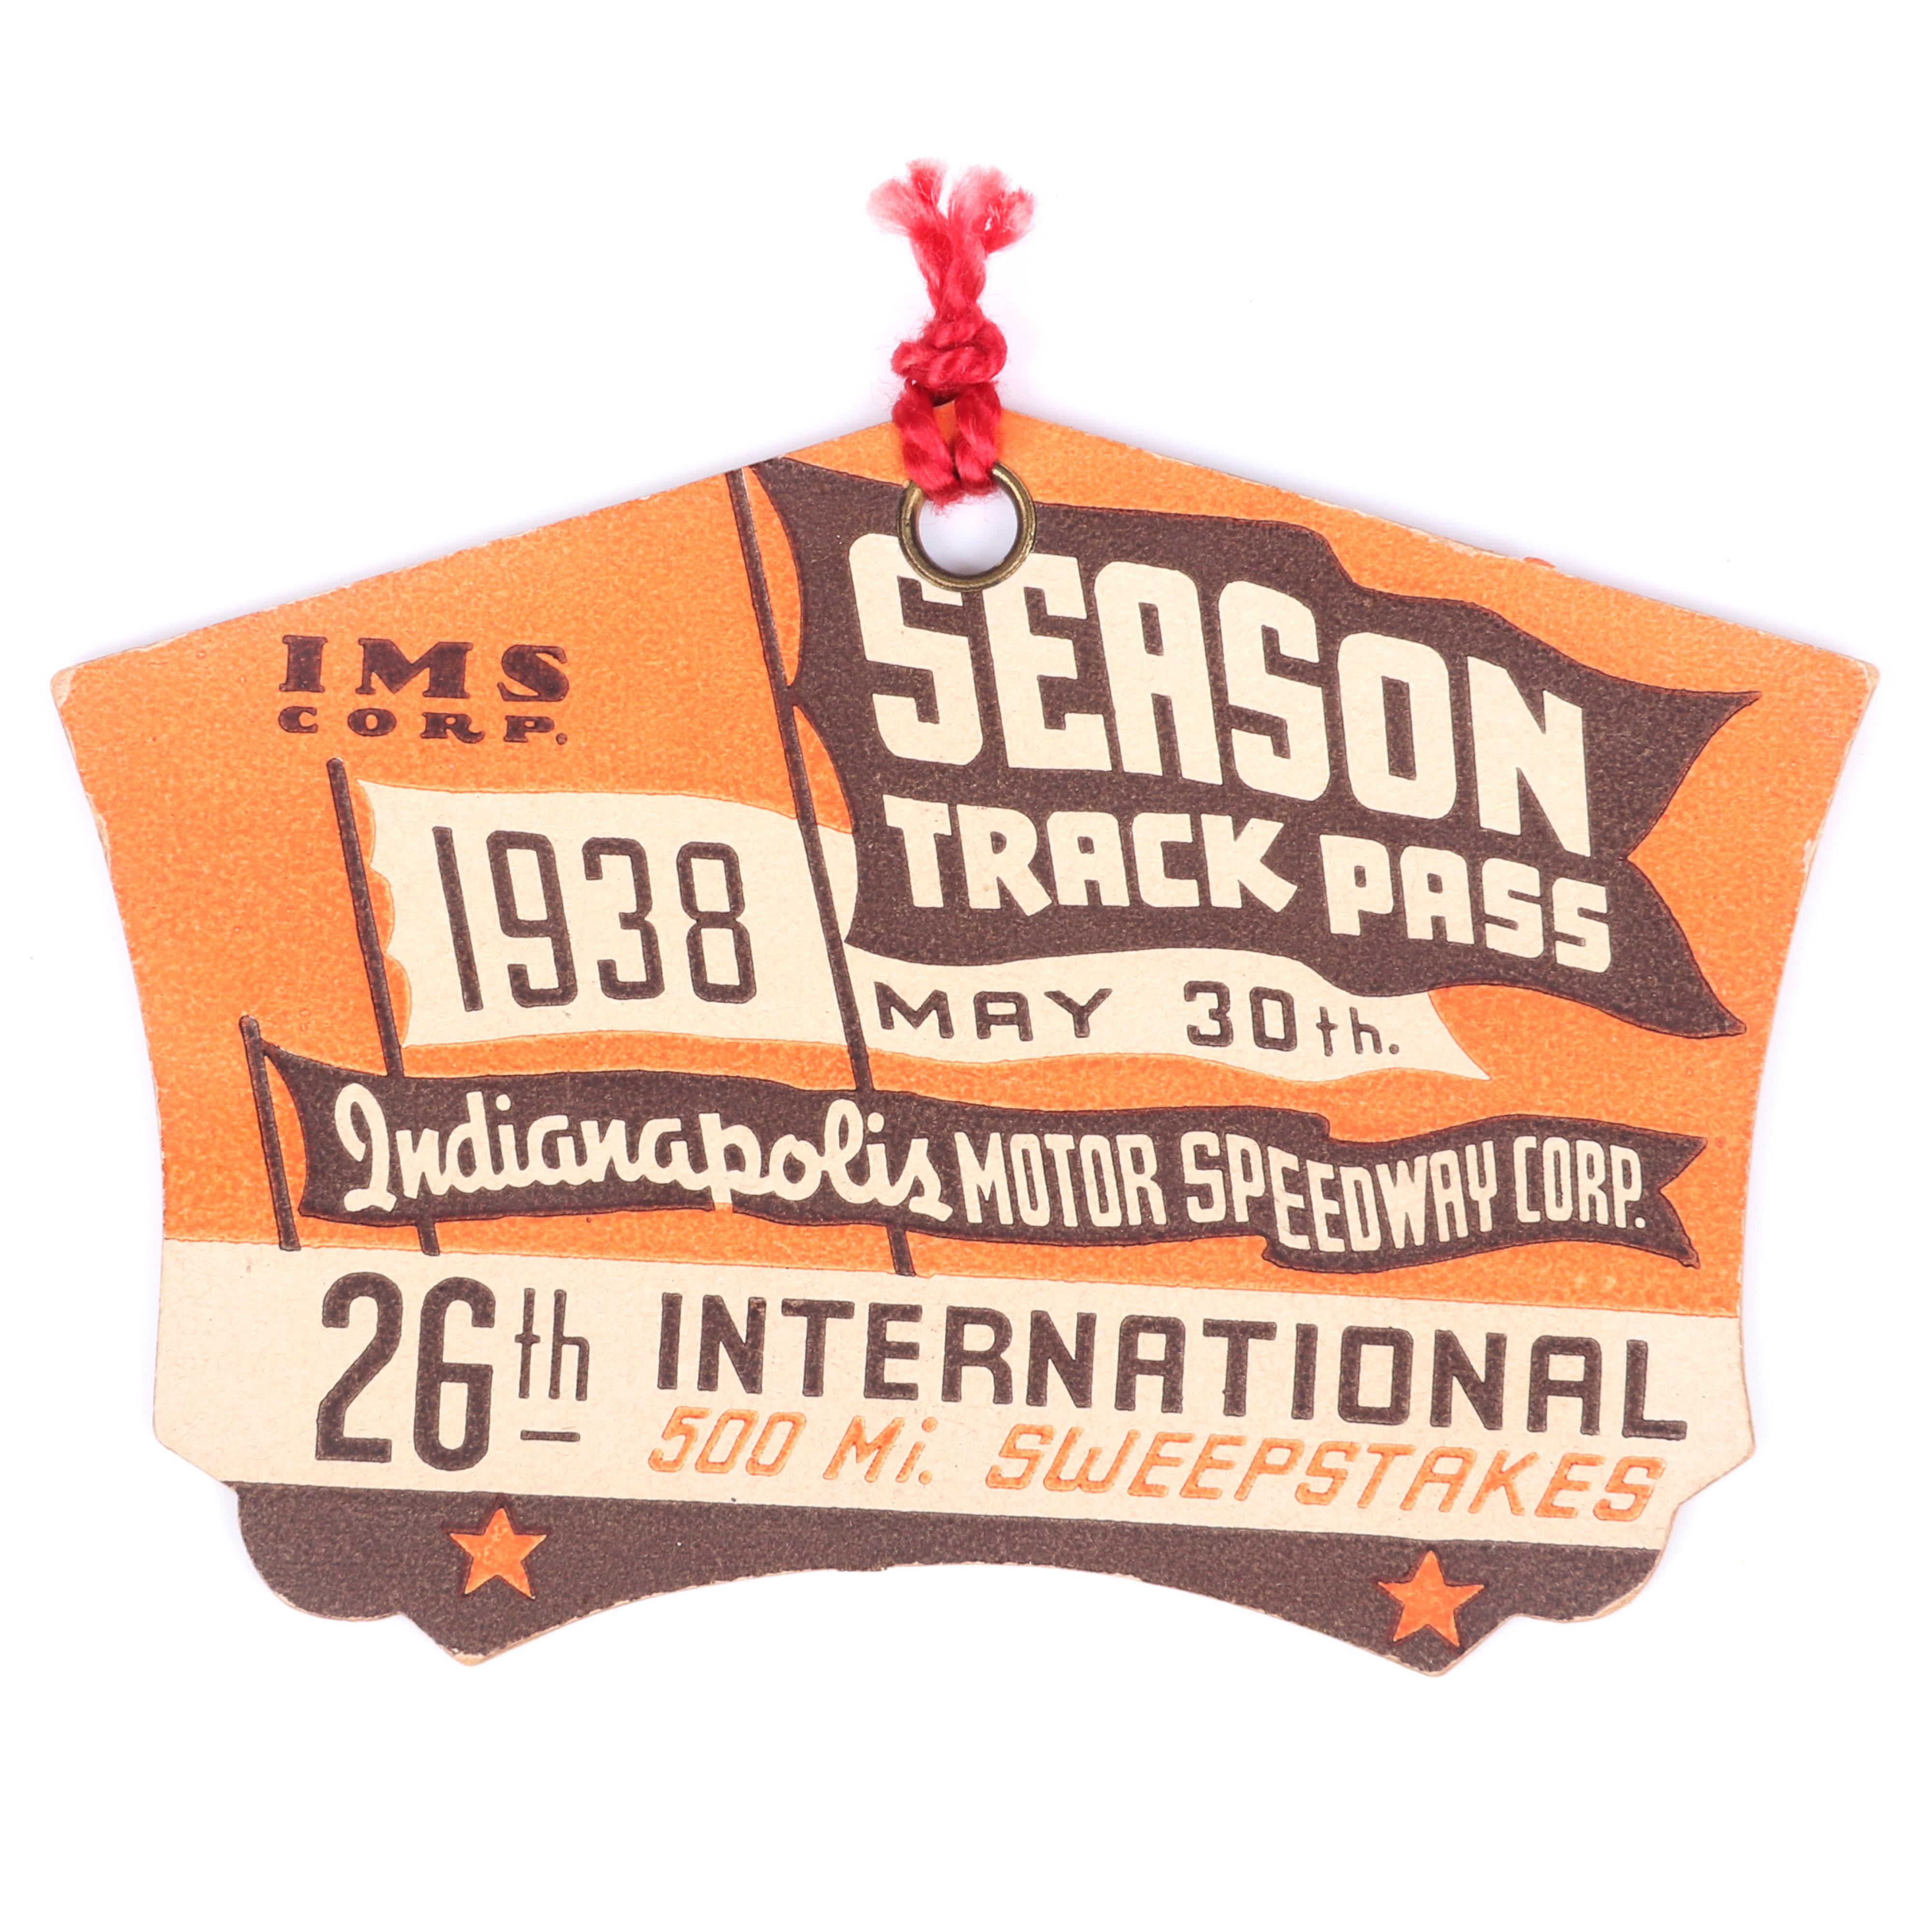 1938 Indianapolis 500 Track Pass